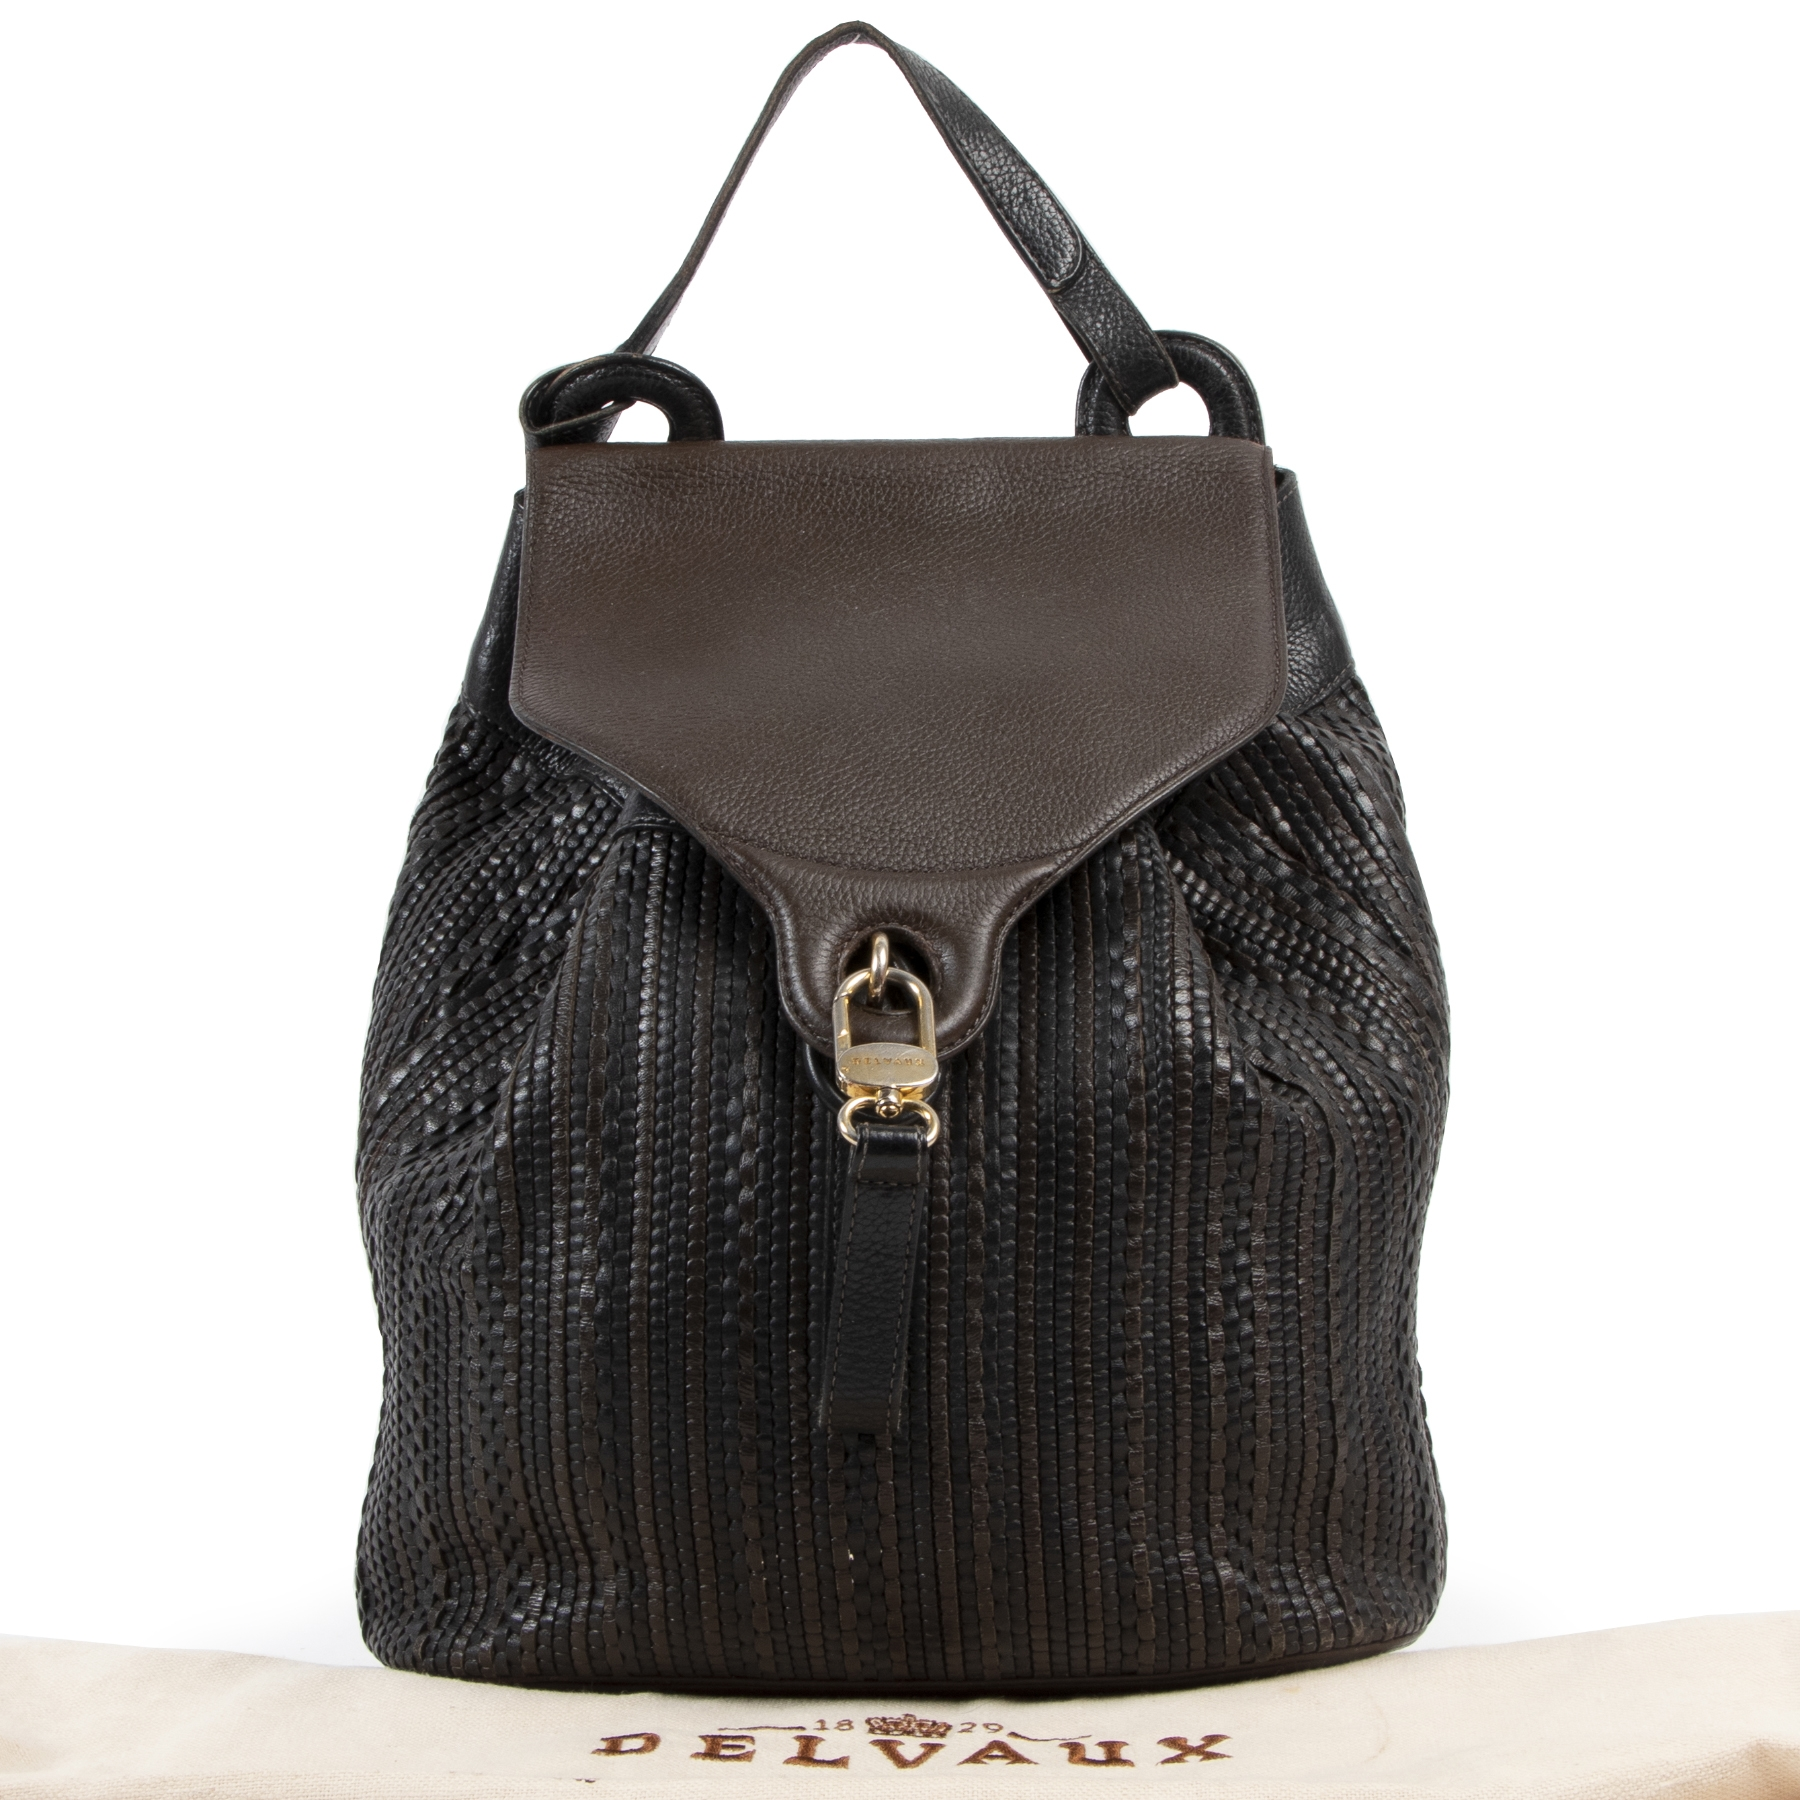 Delvaux Toile de Cuir Brown and Black Backpack for the best price at Labellov secondhand luxury